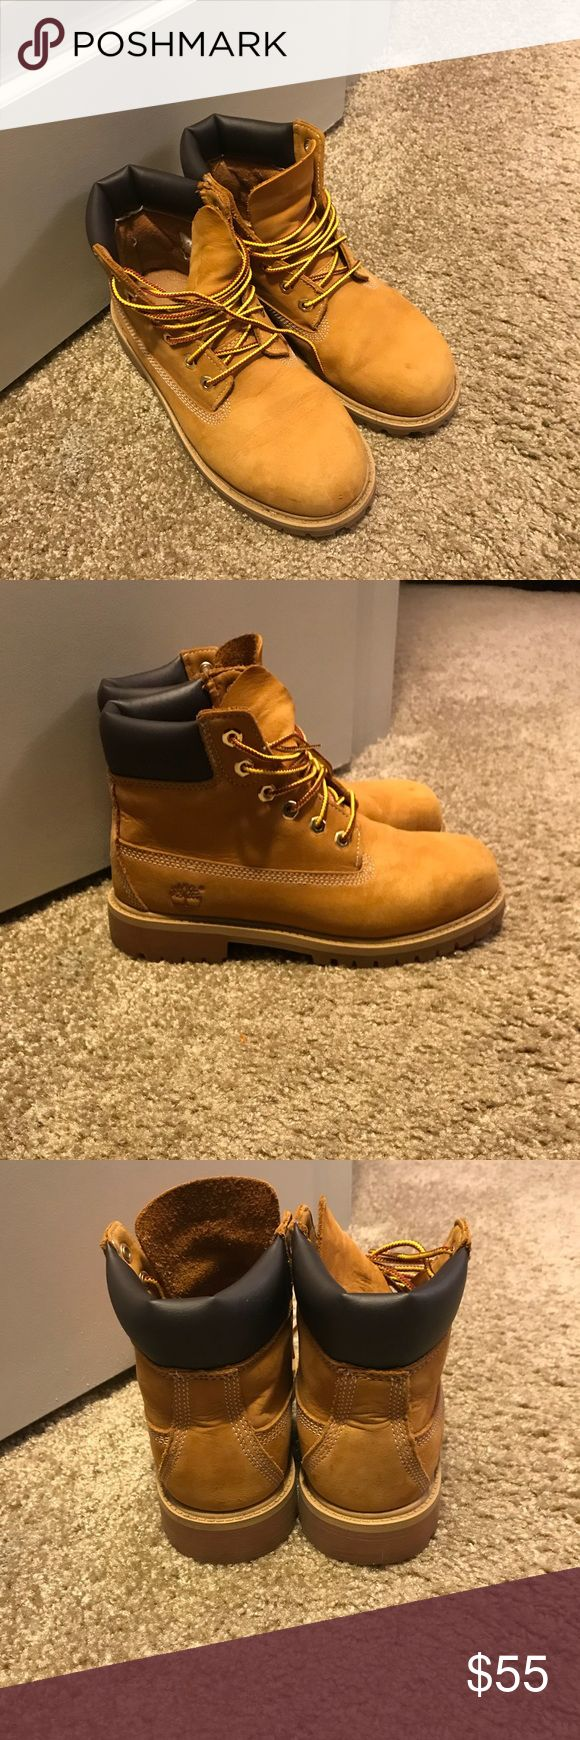 Kids Timberland Boots Size 3y. In great condition. Timberland Shoes Boots